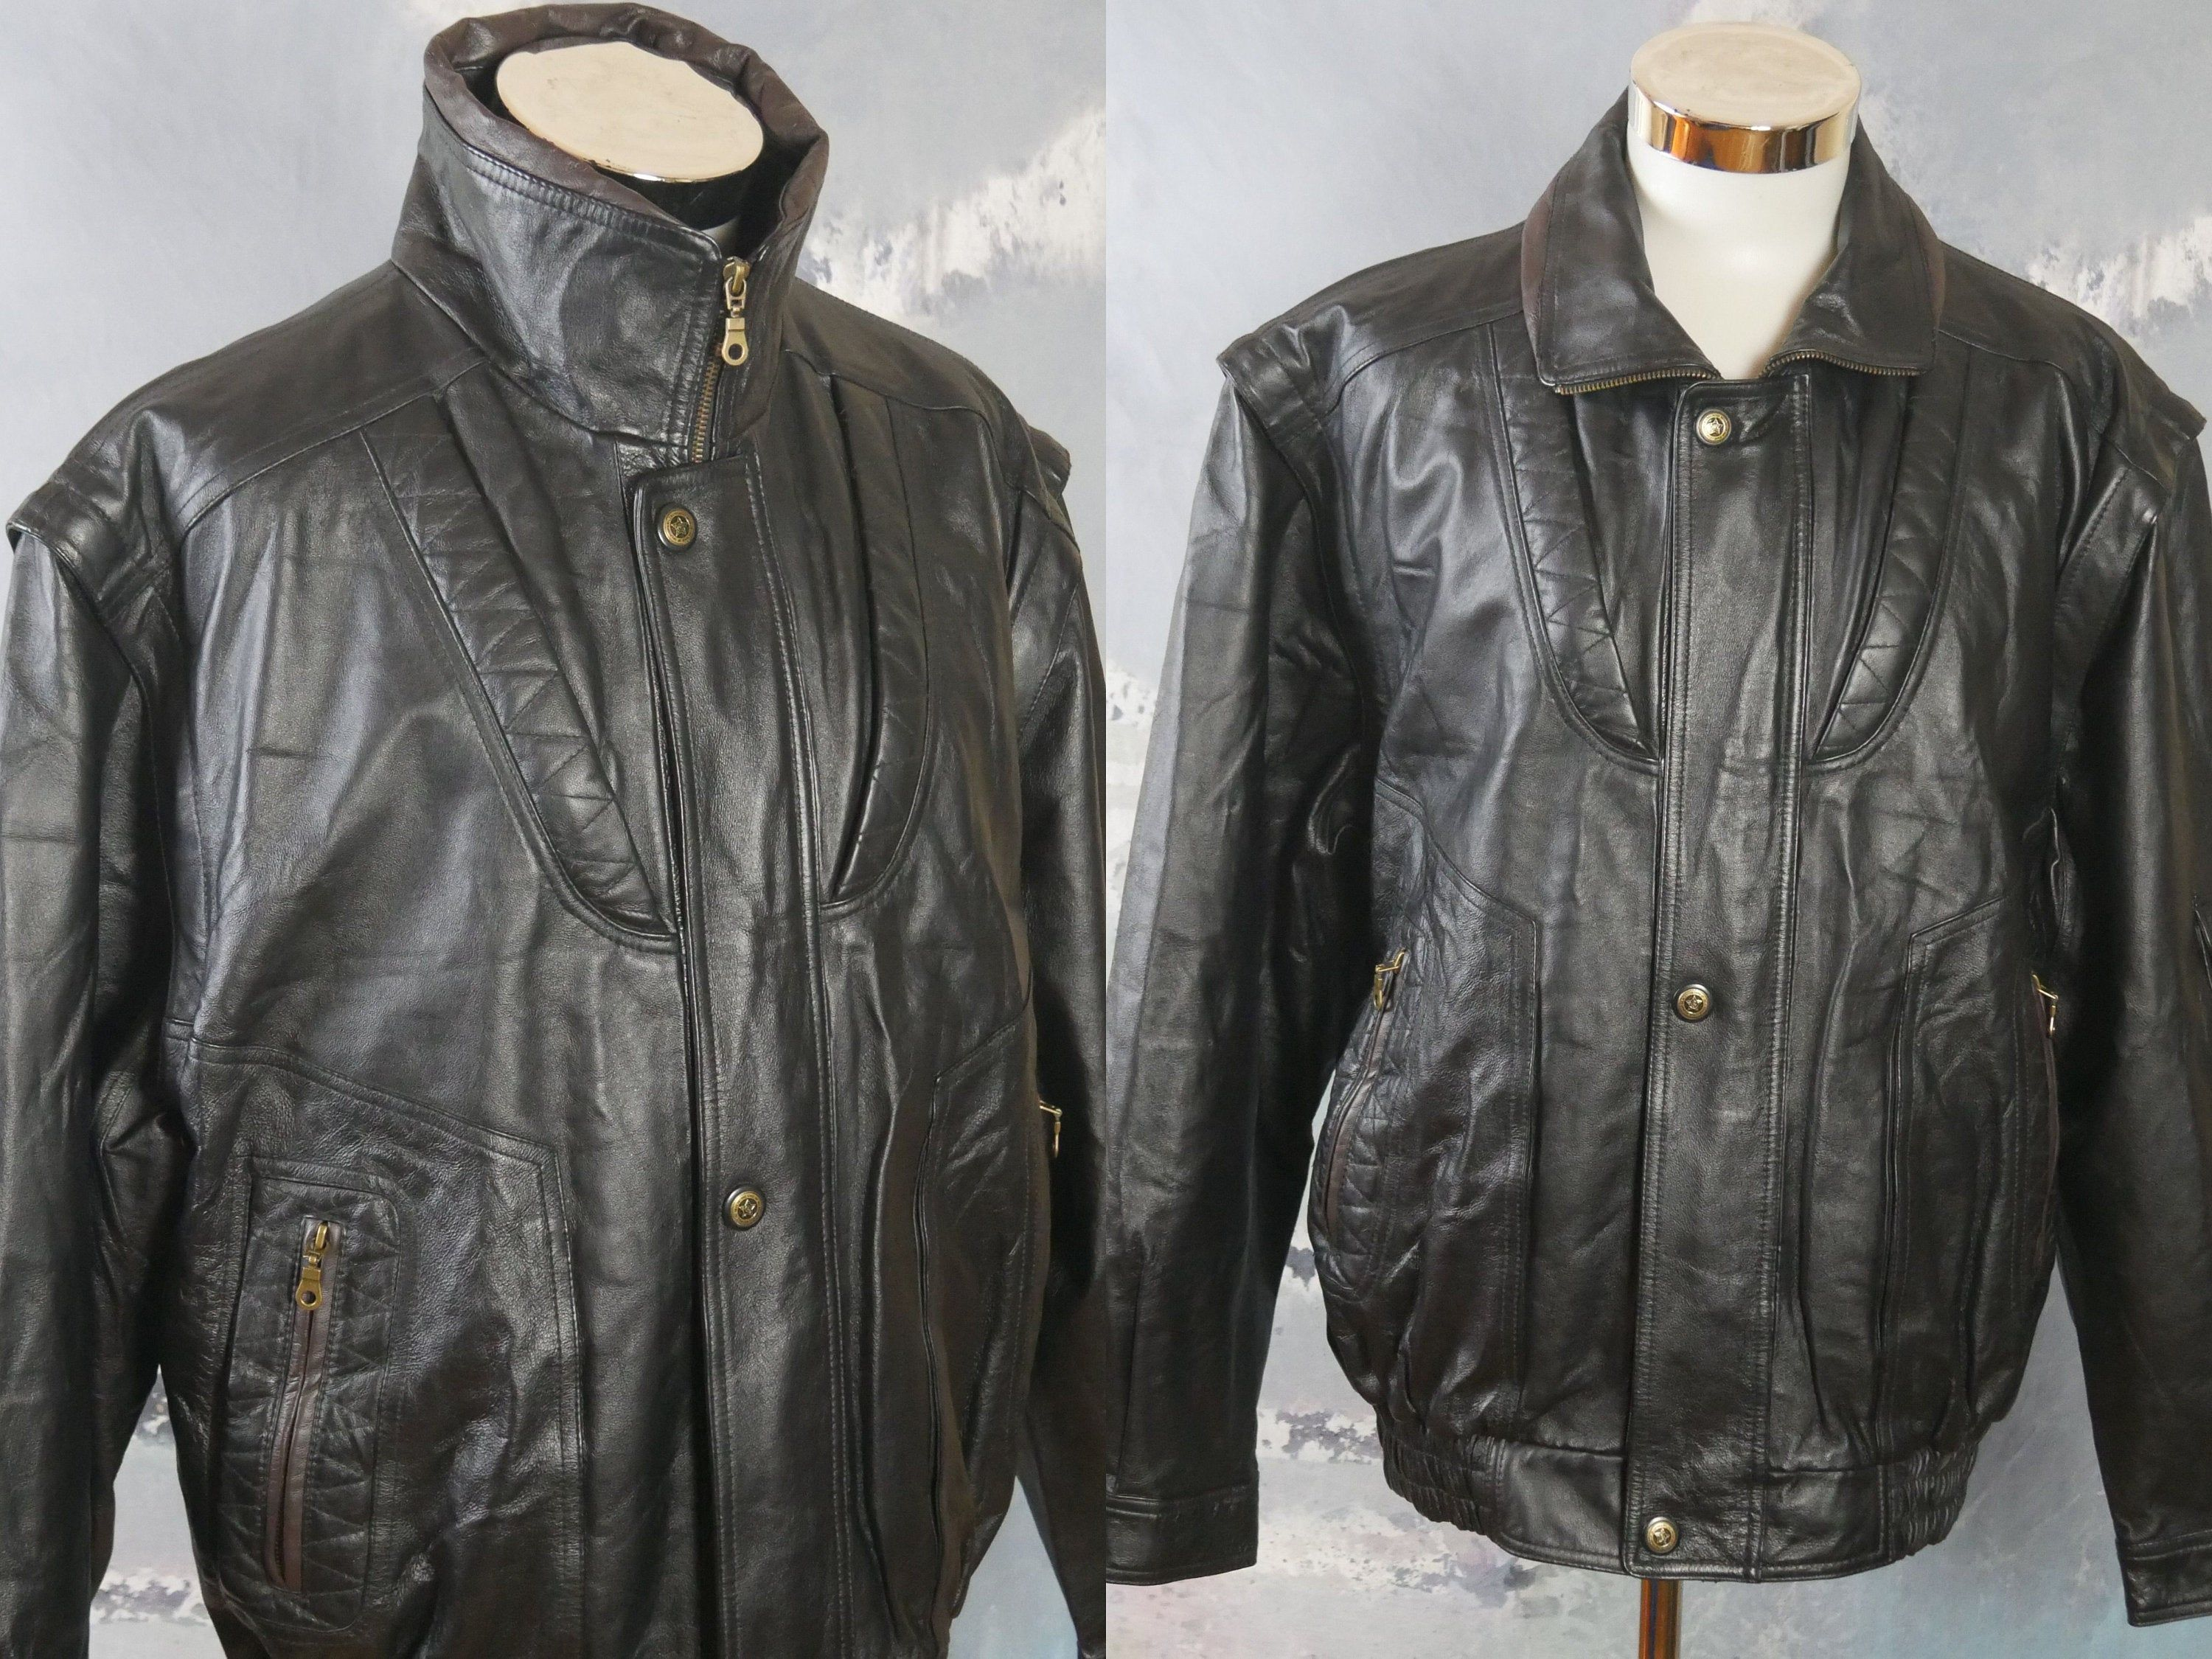 Vintage Leather Motorcycle Jacket in Metallic Gold and Black Checker Size Medium by Expose 90s Metallic Black and Gold Leather Jacket